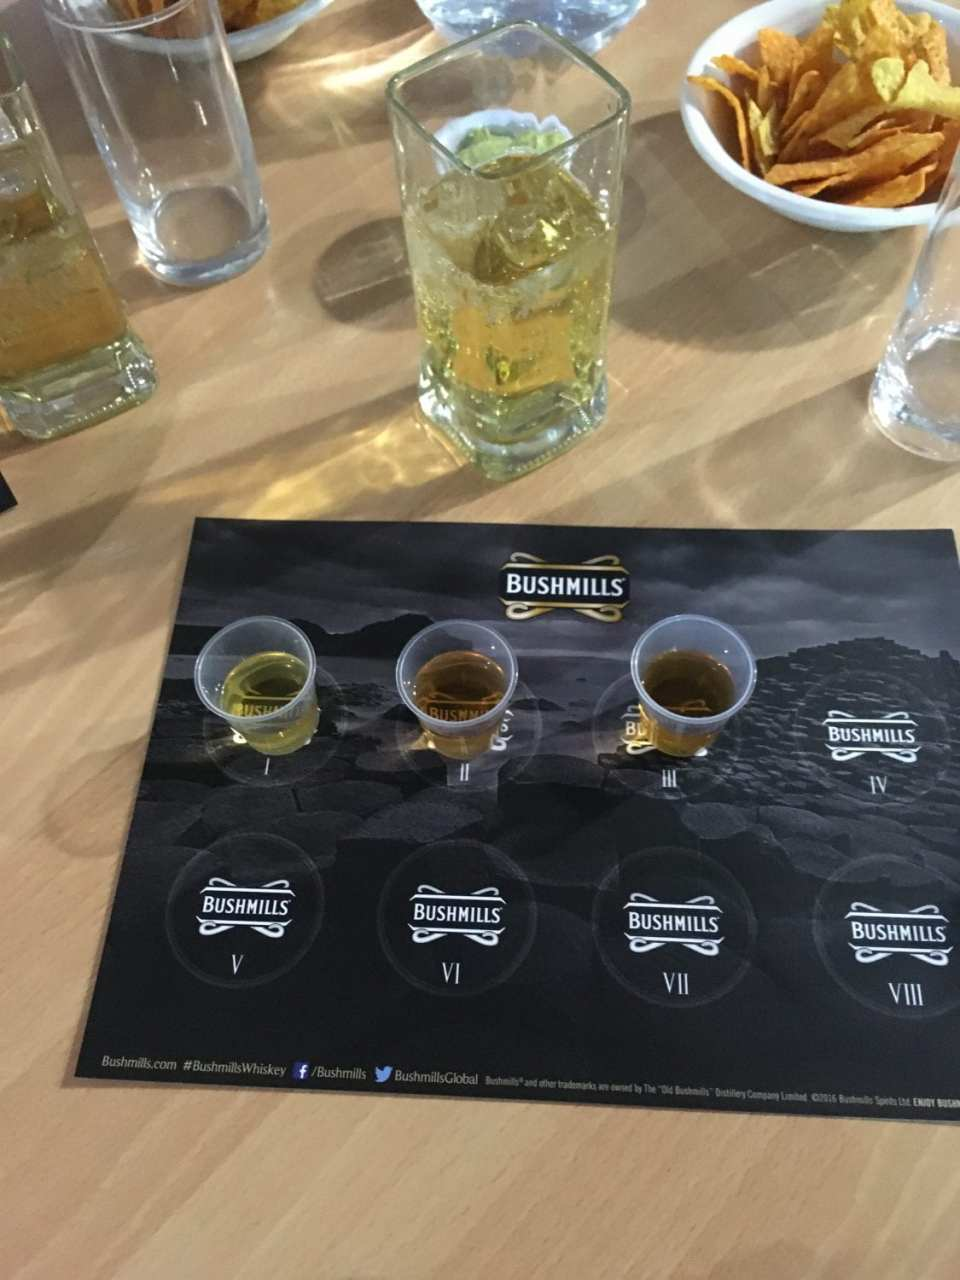 Three shot glasses containing three different Bushmills Whiskeys - the shading getting dark from left to right as the age of the whiskey increases